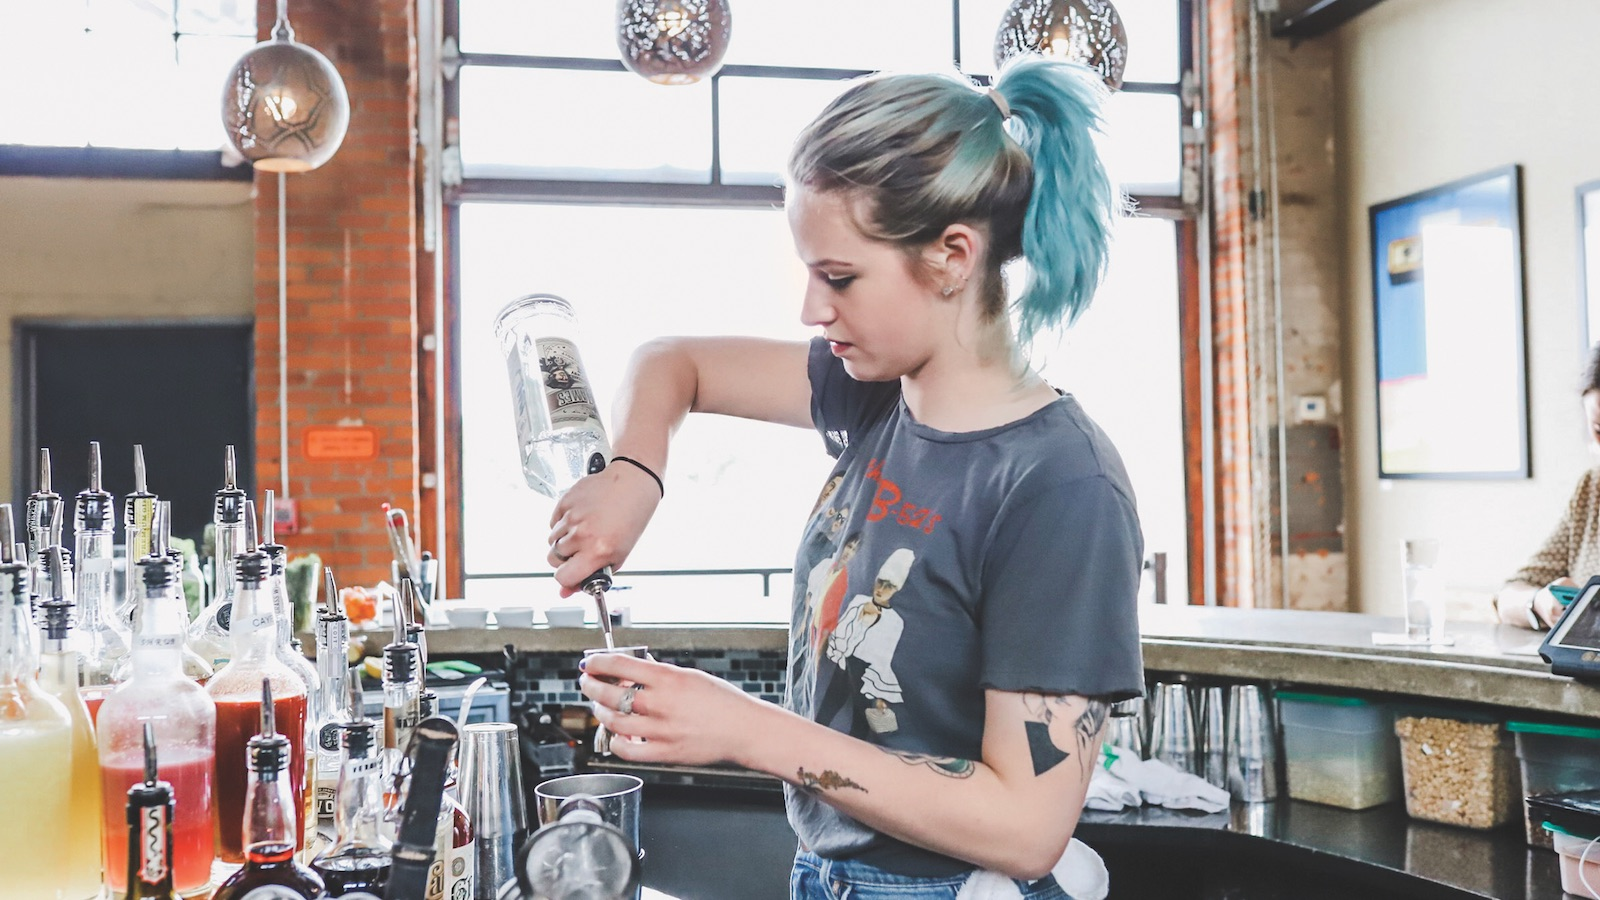 A woman mixes cocktails at the bar of Two James Spirits in Detroit